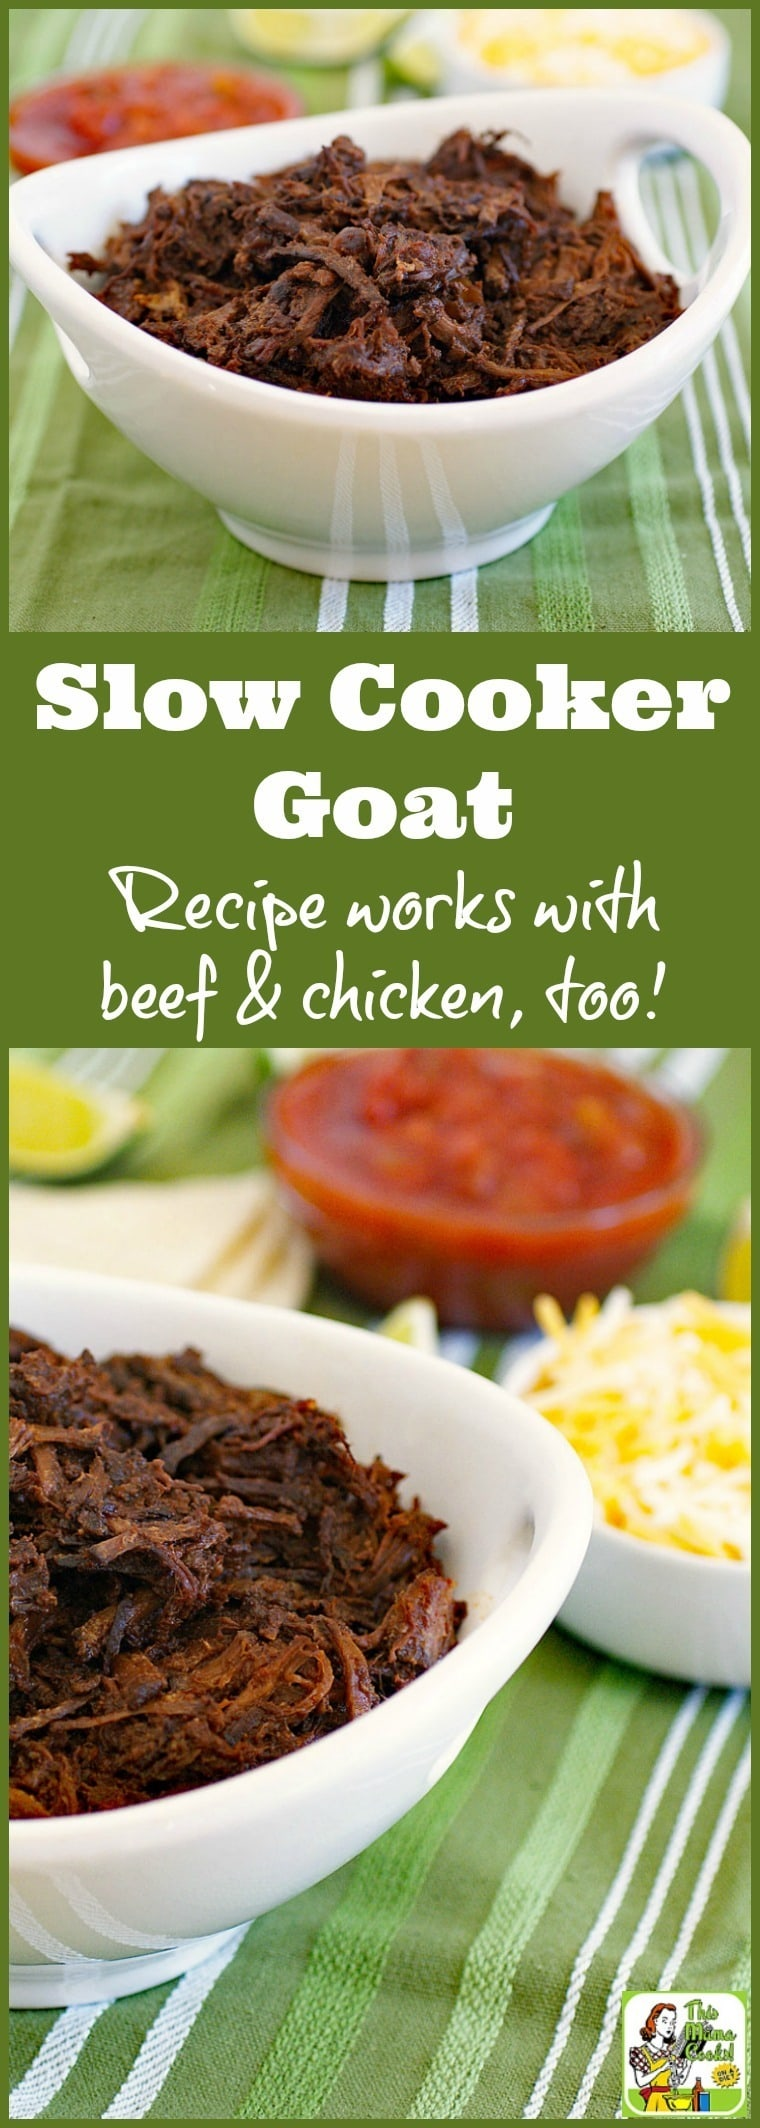 This Slow Cooker Goat recipe makes amazing shredded beef & chicken, too! Click to get this easy to make and healthy crock-pot shredded goat recipe.